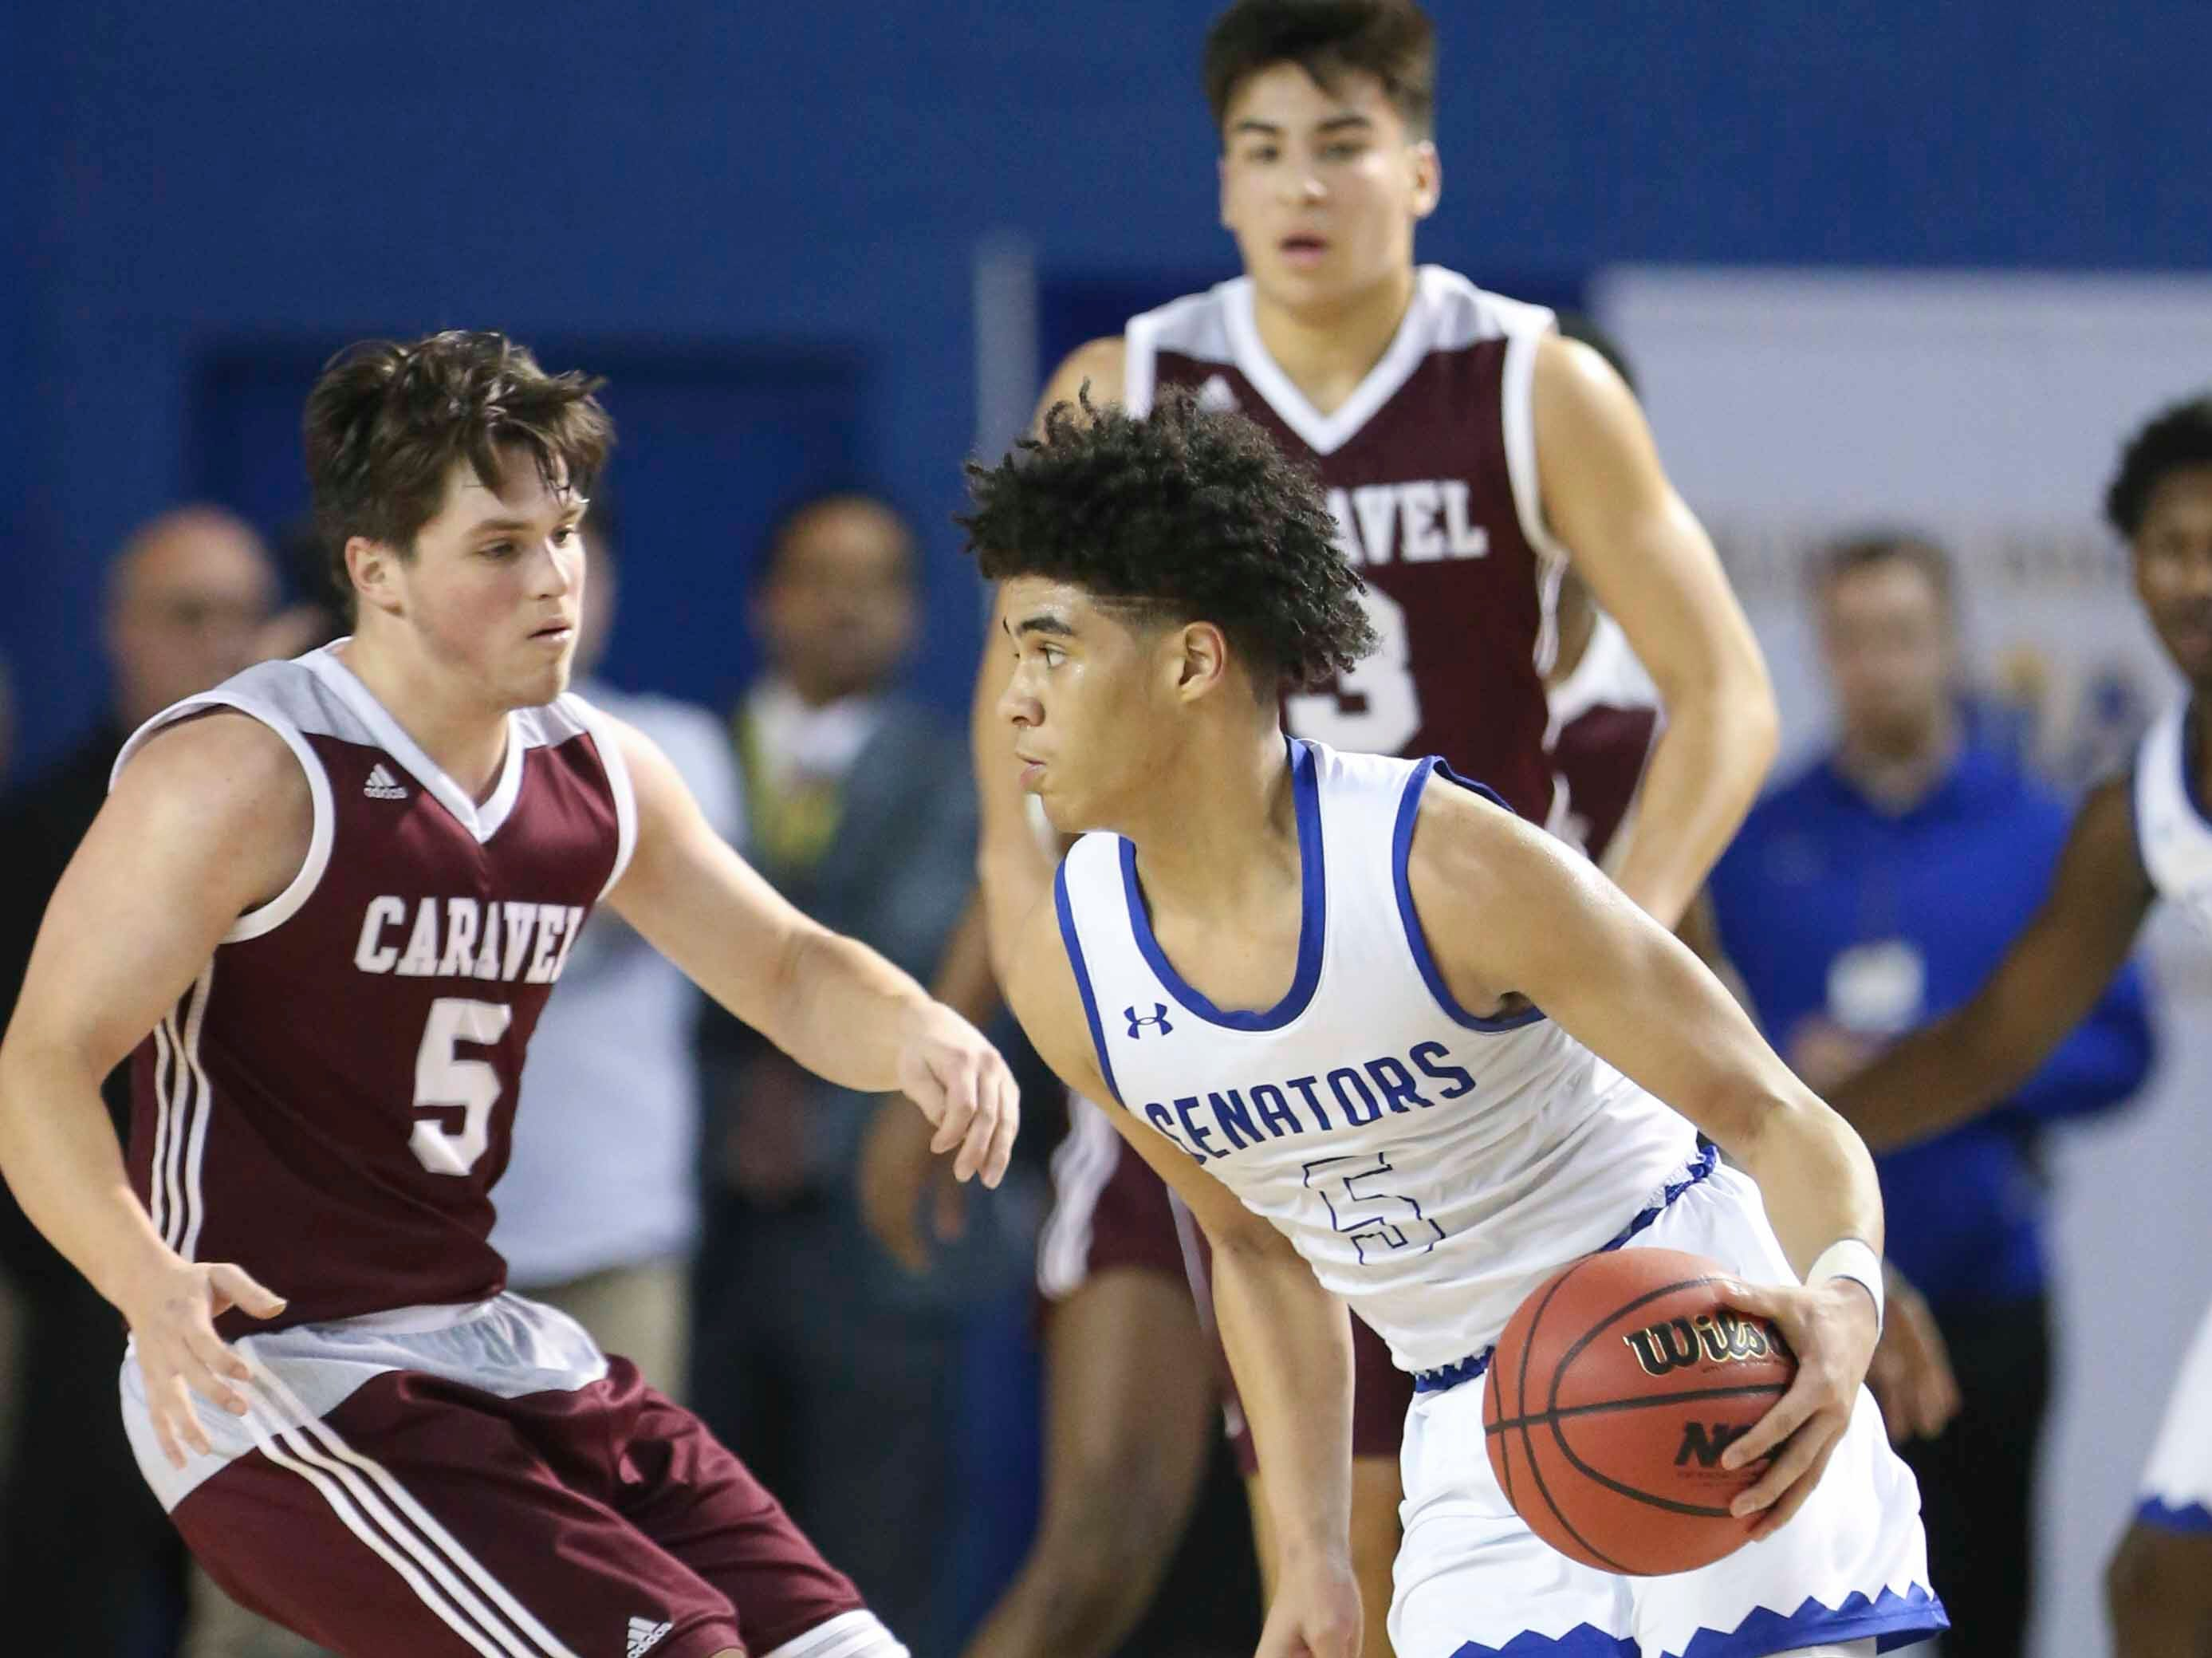 Caravel's Kevin Keister (left) defends against Dover's Elijah Allen in the second half of Dover's 68-52 win in a DIAA state tournament semifinal at the Bob Carpenter Center Thursday.